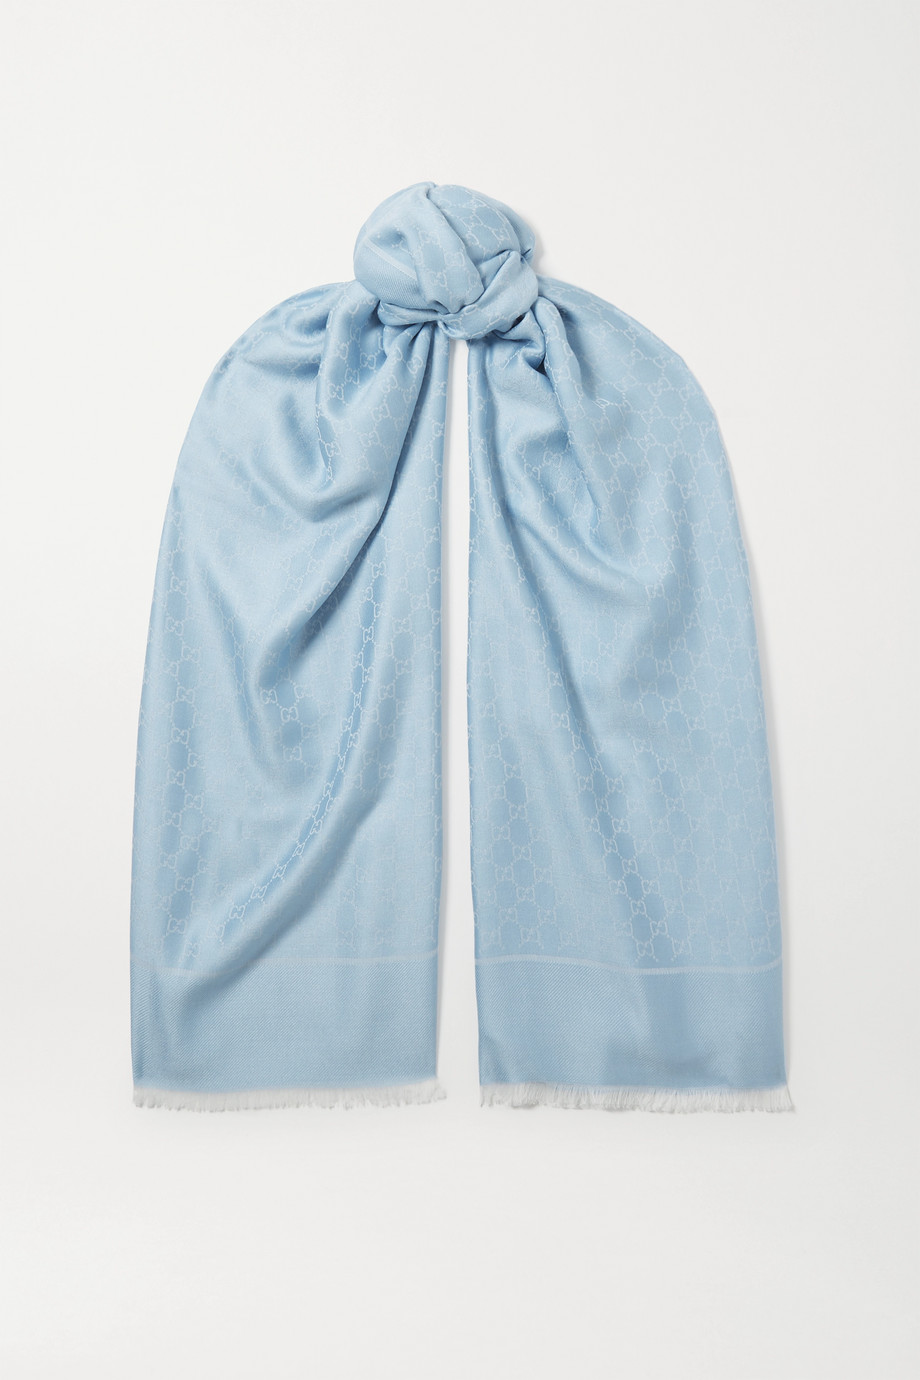 Gucci Fringed wool, cotton and silk-blend jacquard scarf